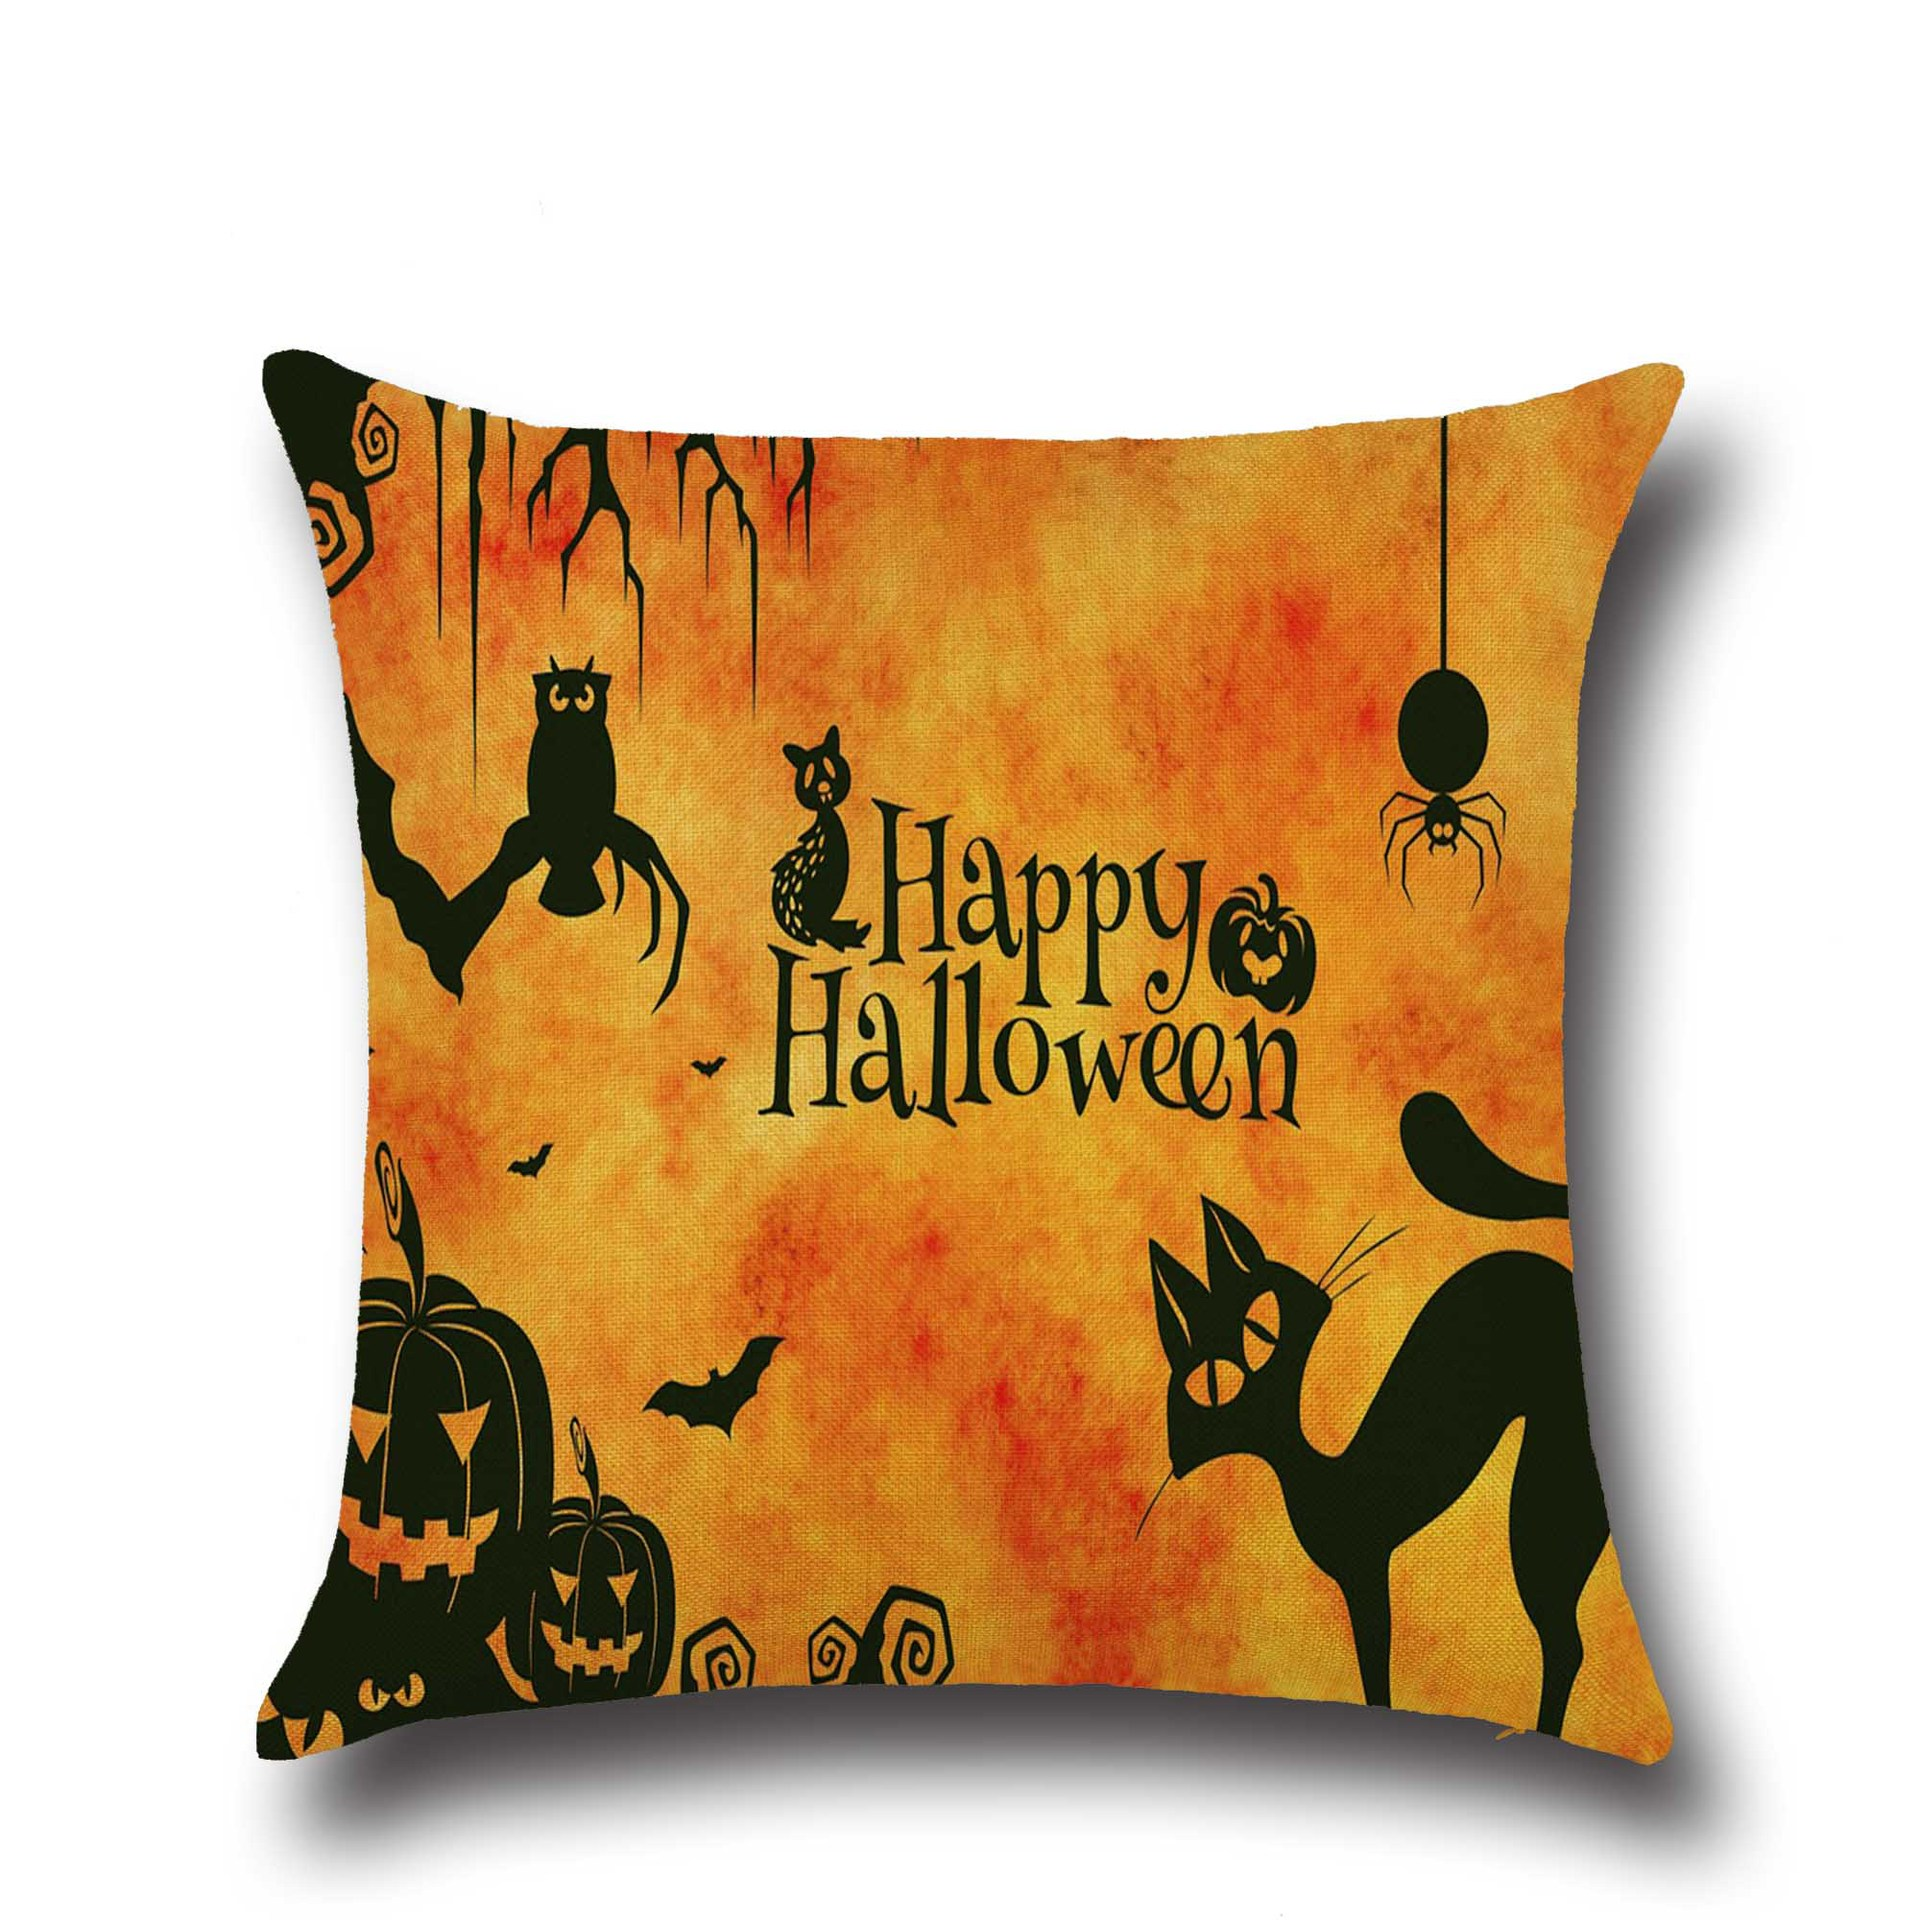 Halloween Thriller Cats Pattern Pillowcase Cotton Linen Throw Pillow Cushion Cover Seat Home Decoration Sofa Decor